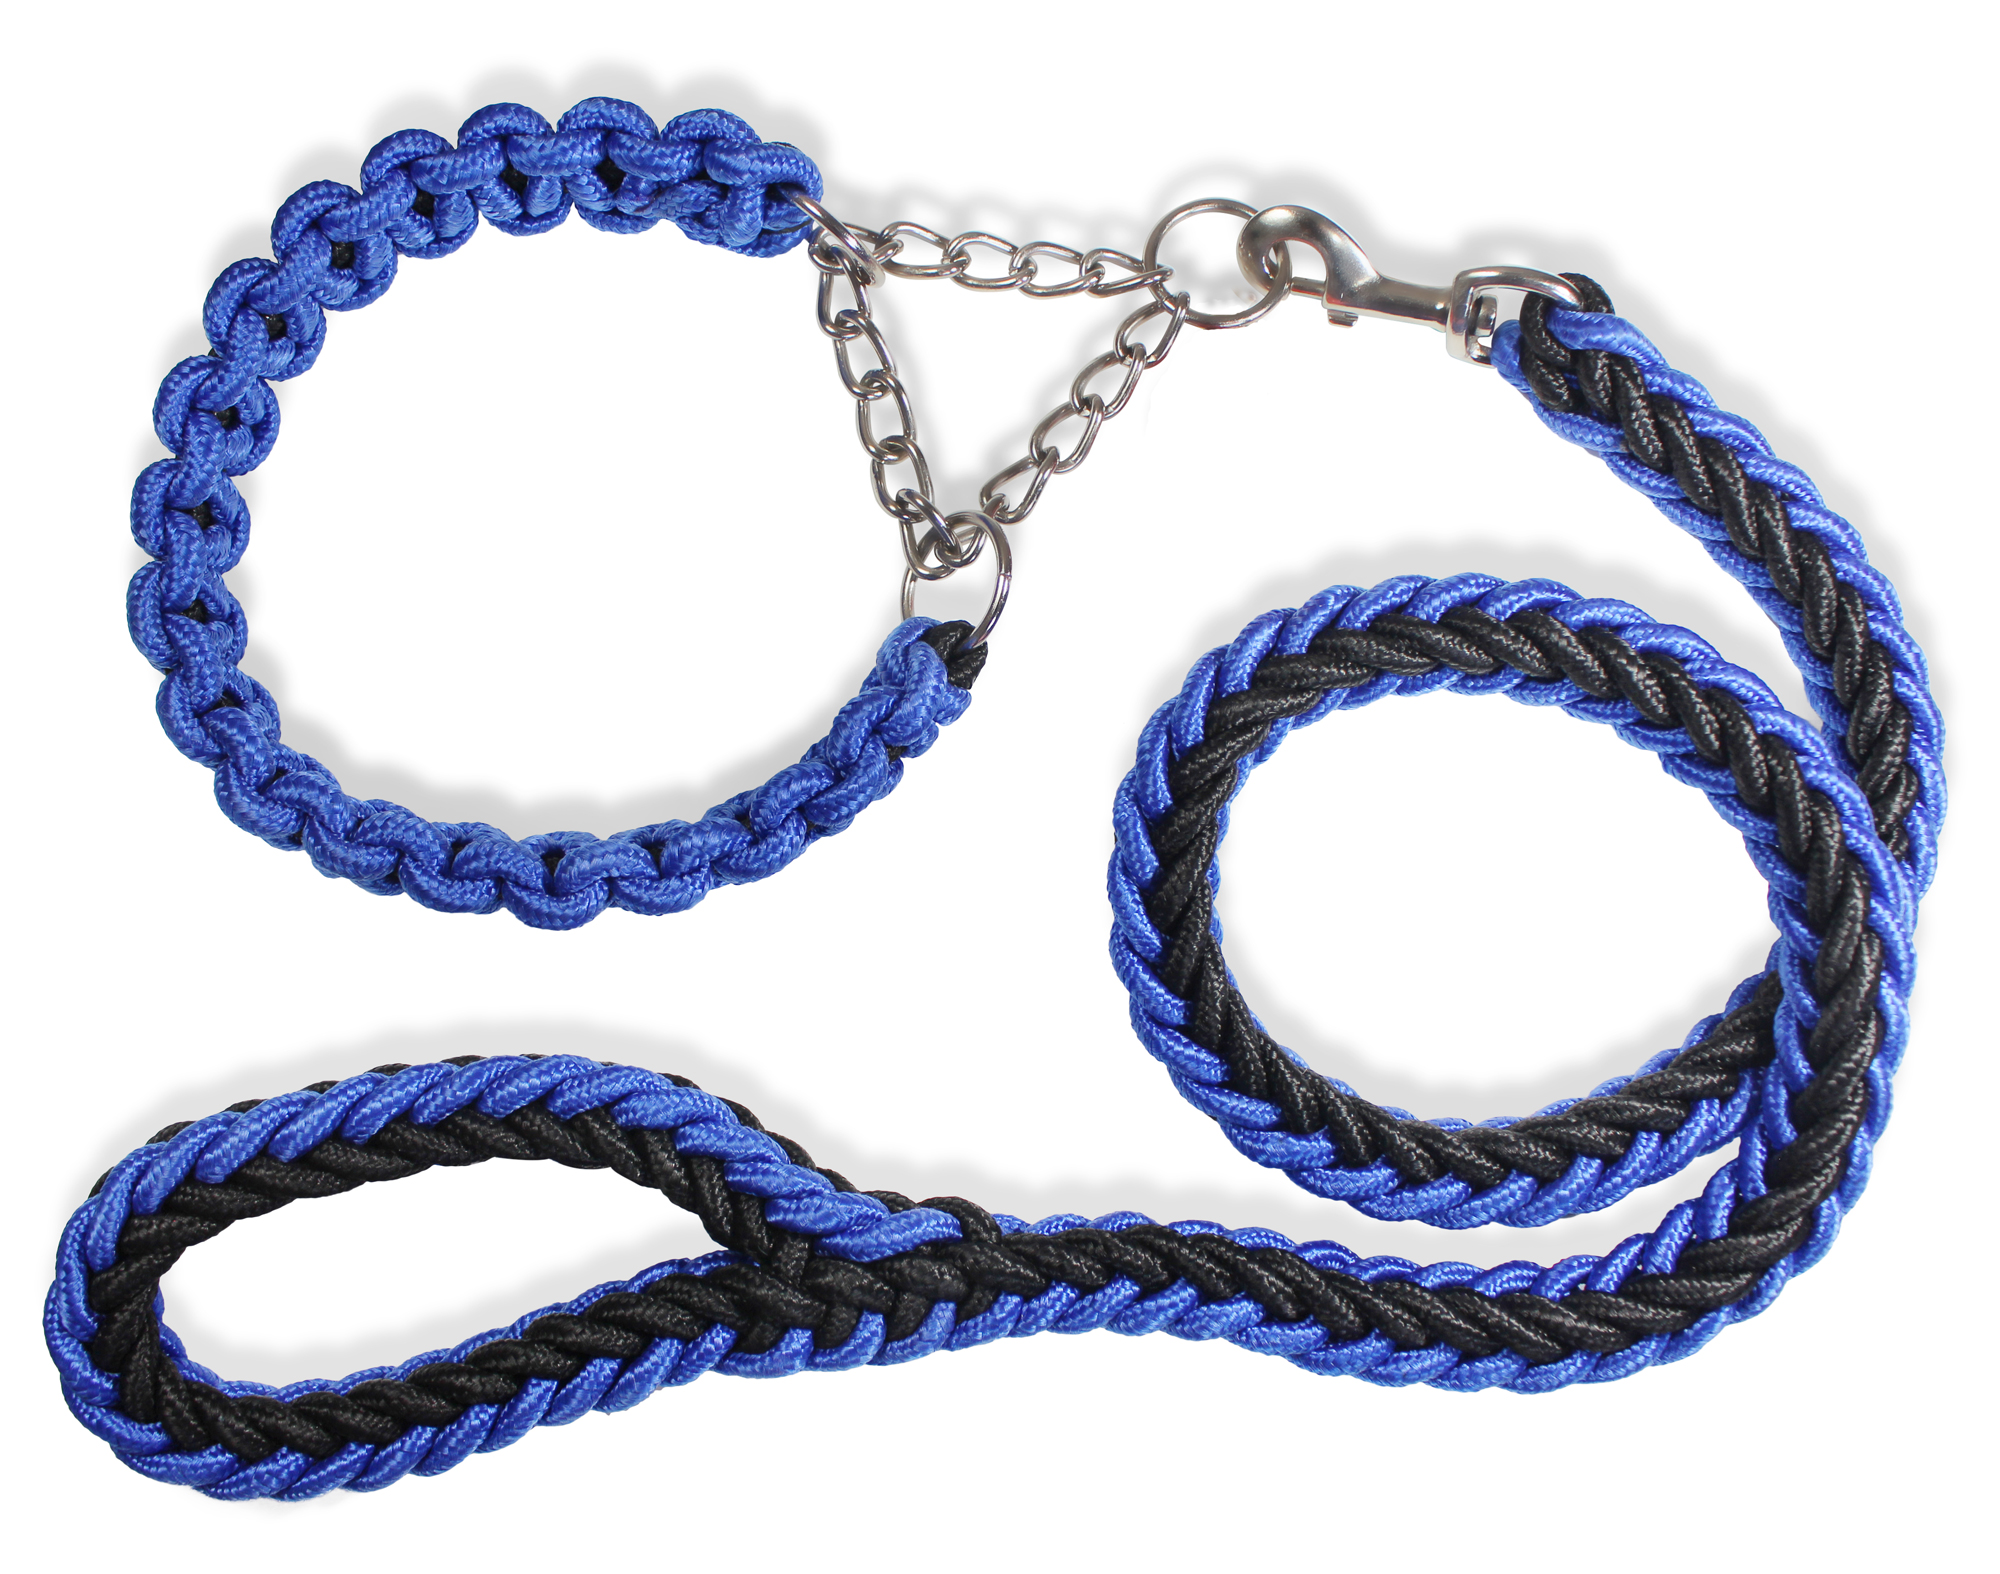 Leash With Chowk - Pet Accessories - Pet Store - Pet supplies